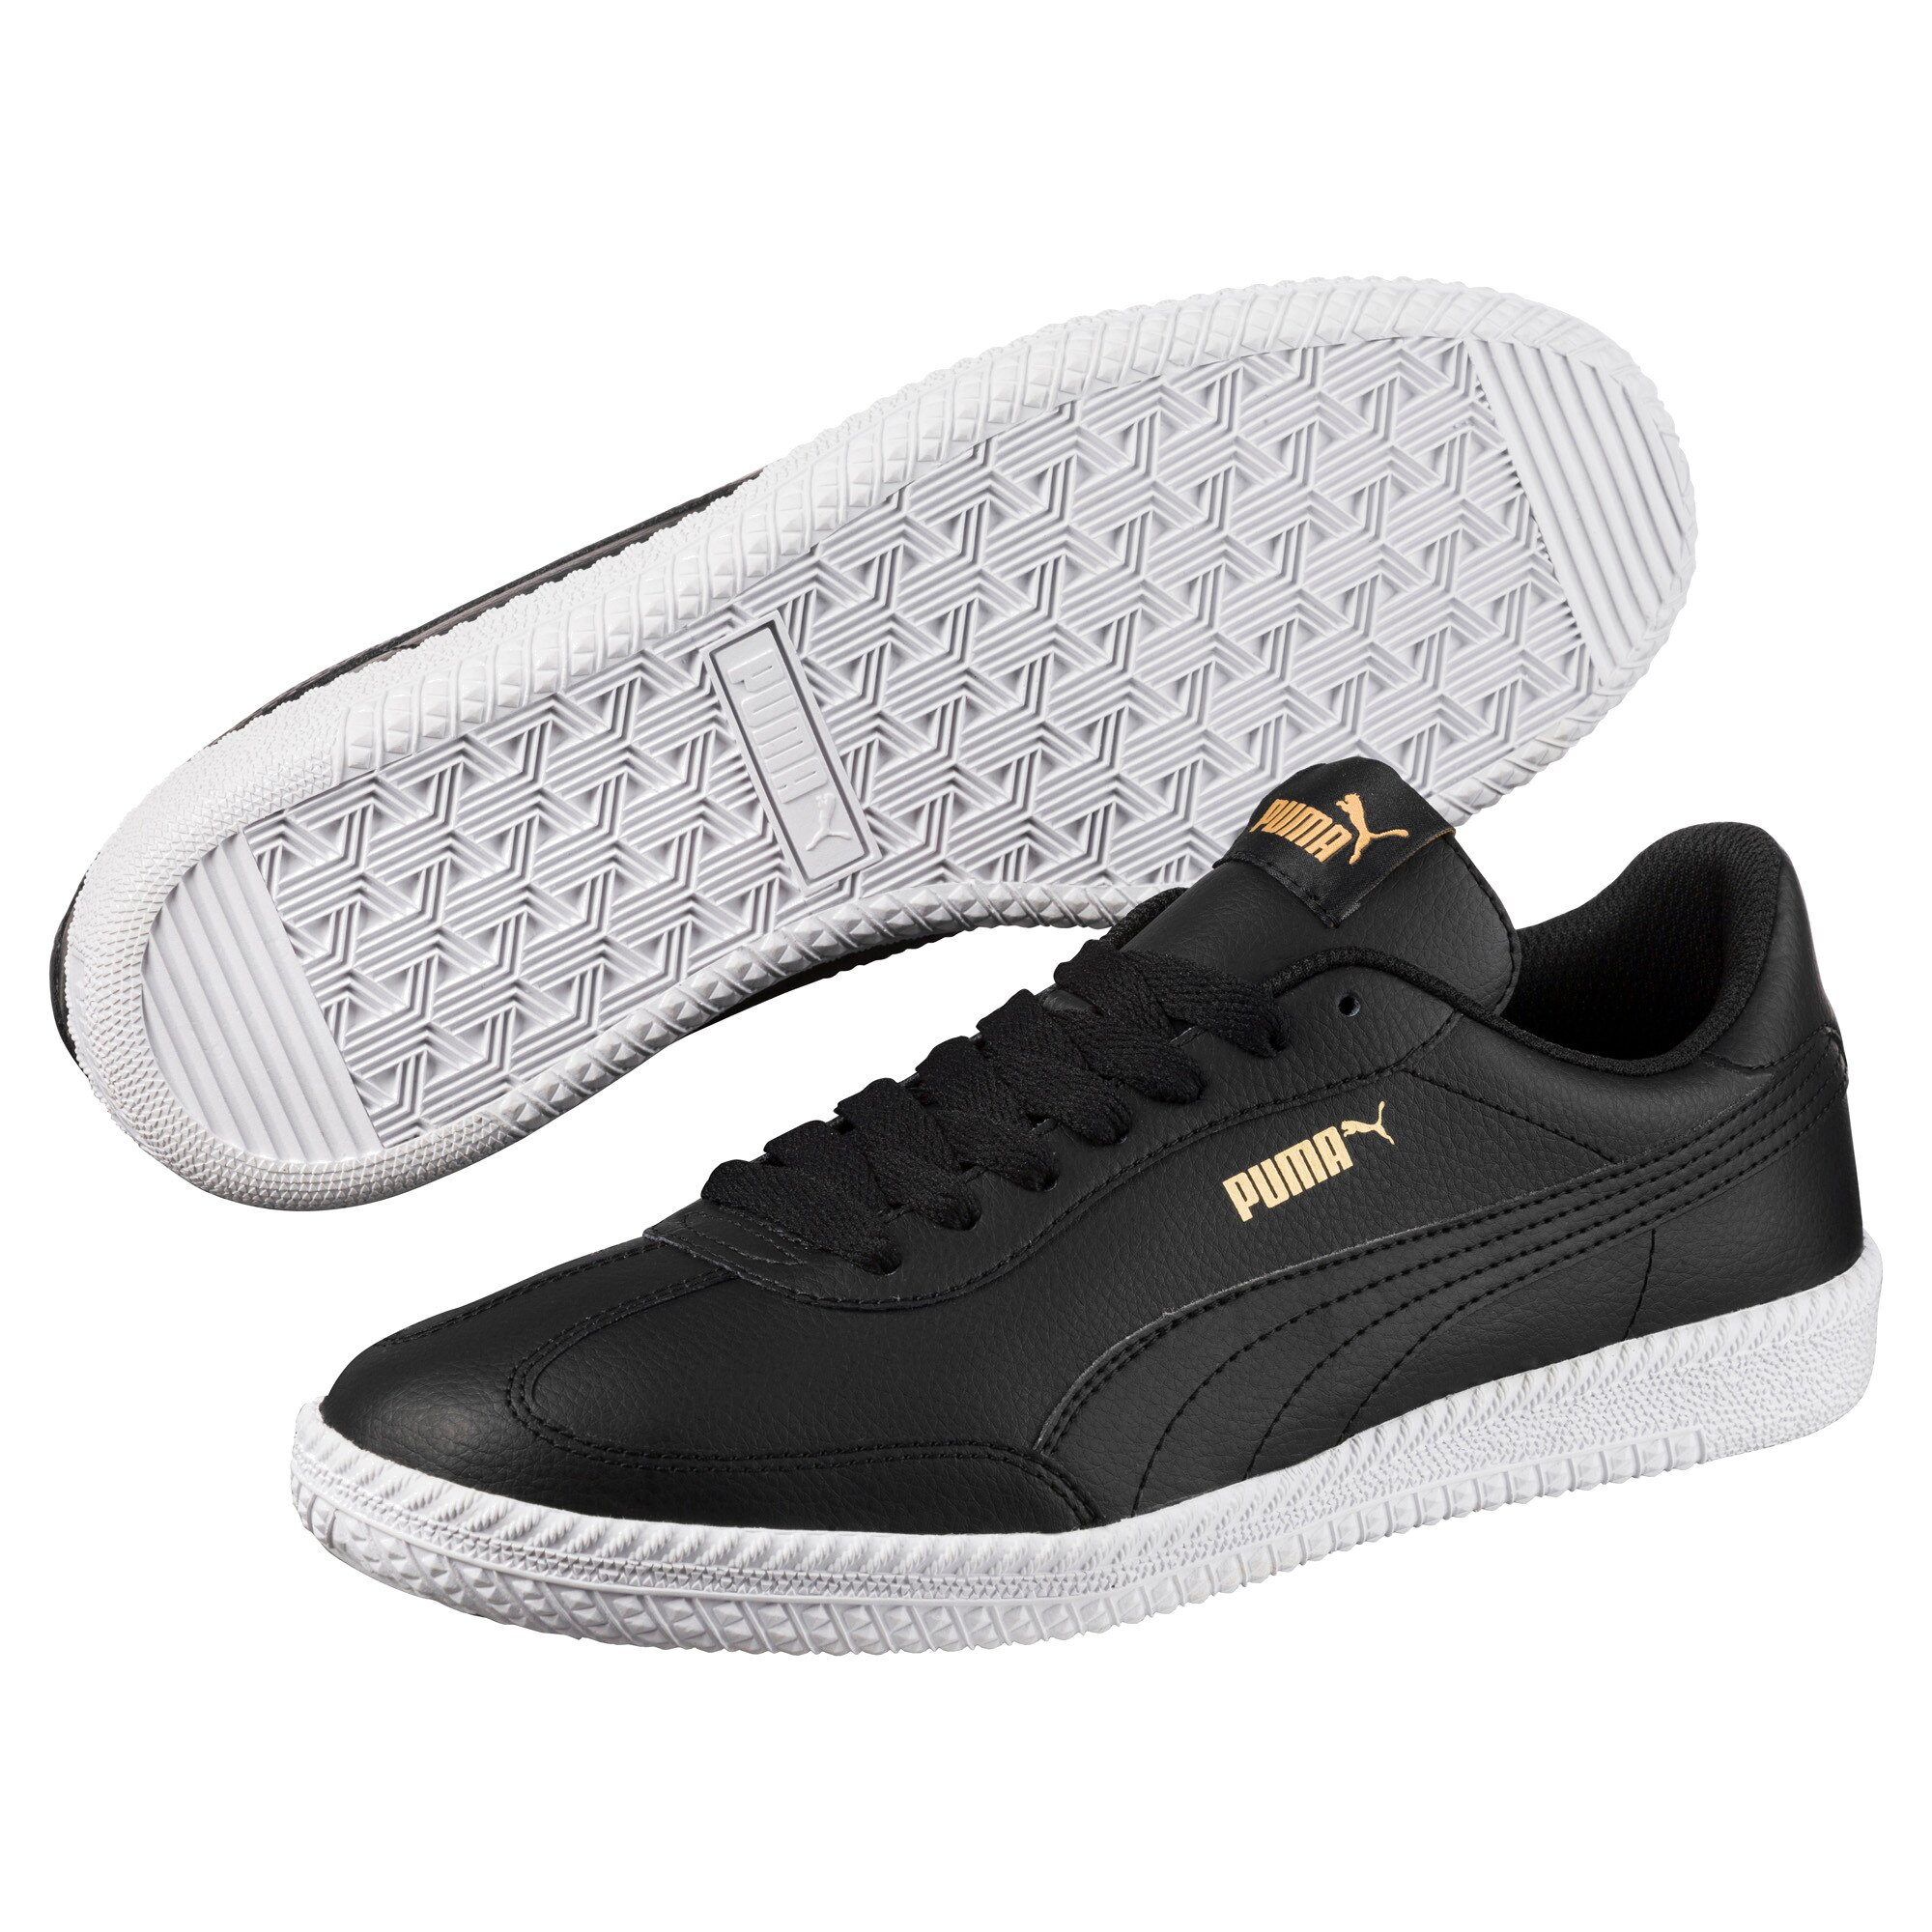 57e49a79236 Official Puma Store  PUMA Astro Cup Leather Trainers Men Shoe Basics ...